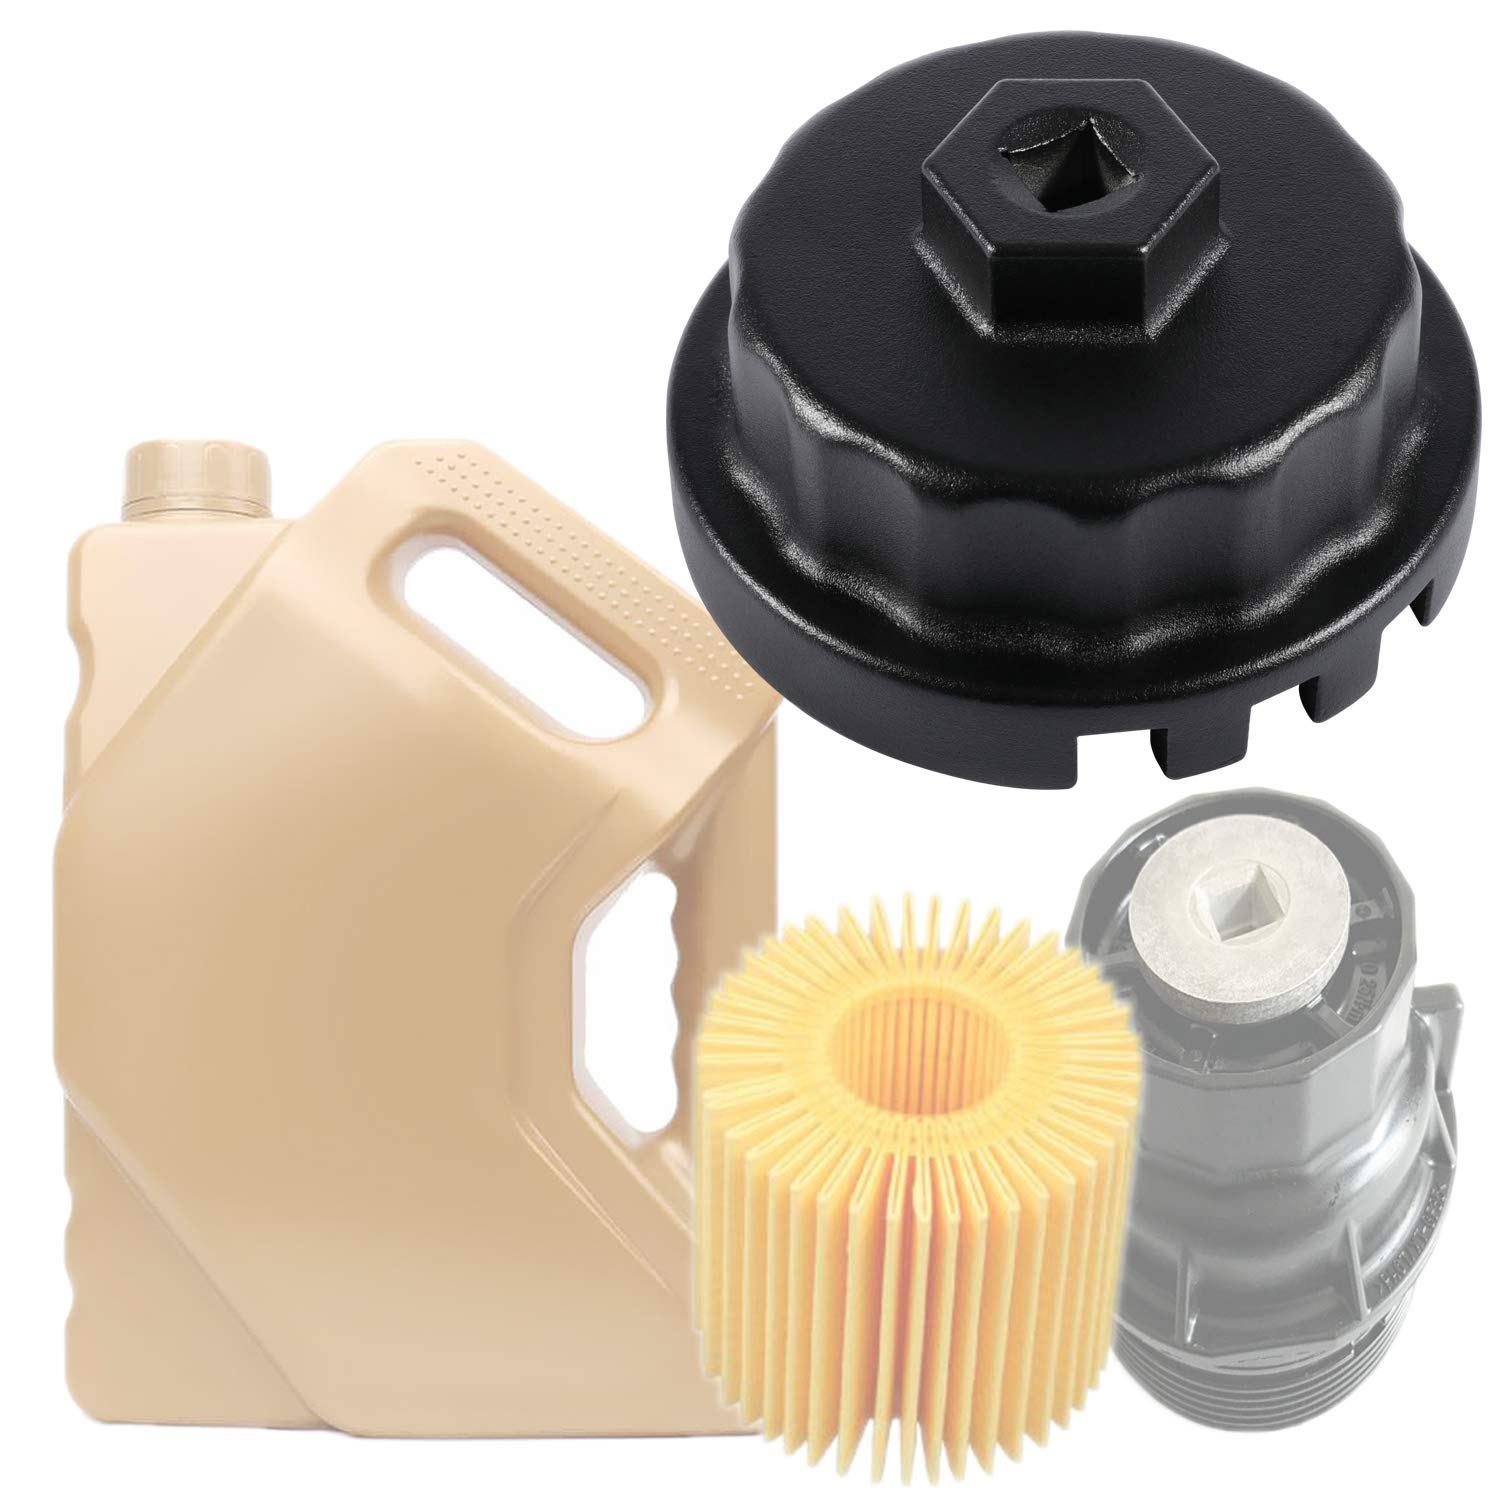 Oil Filter Wrench for RAV4,Camry,Tundra,Highlander,Sienna and More-Cup Style Oil Filter Cap Removal Socket Tool for 2.5-5.7L Engine with 64mm Cartridge Style Oil Filter Housing